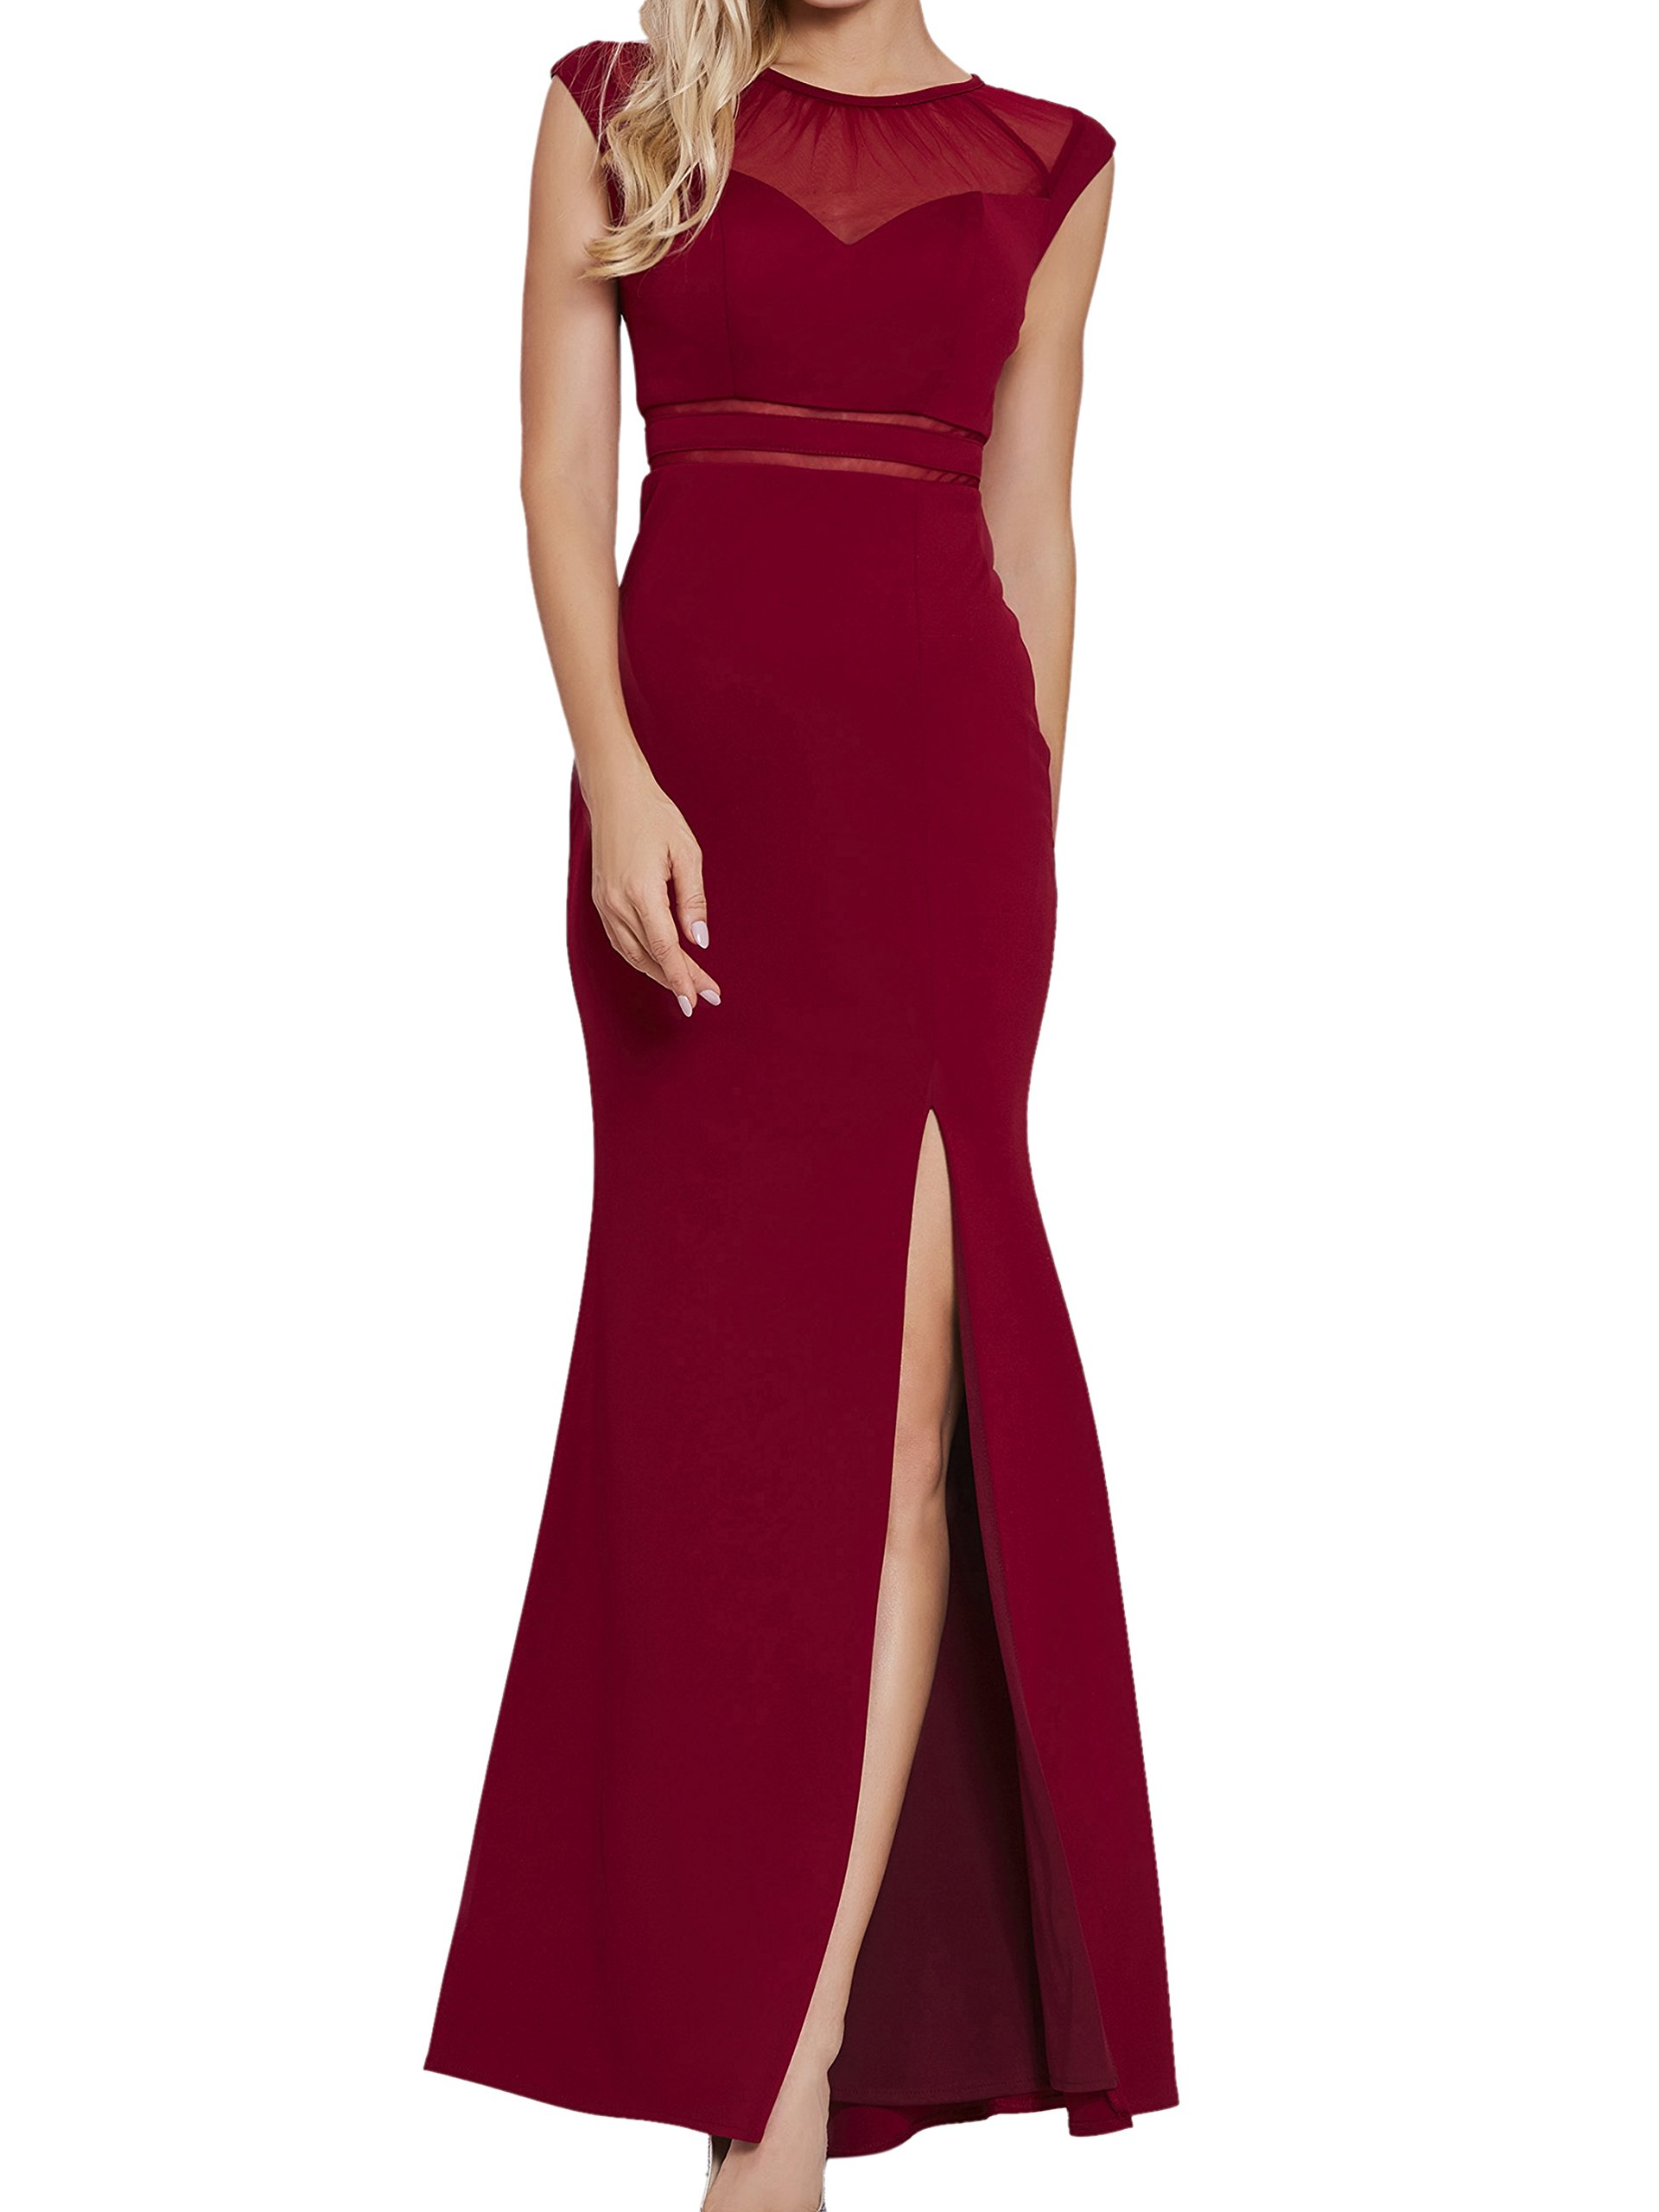 Red Evening Gowns with Split: Amazon.com